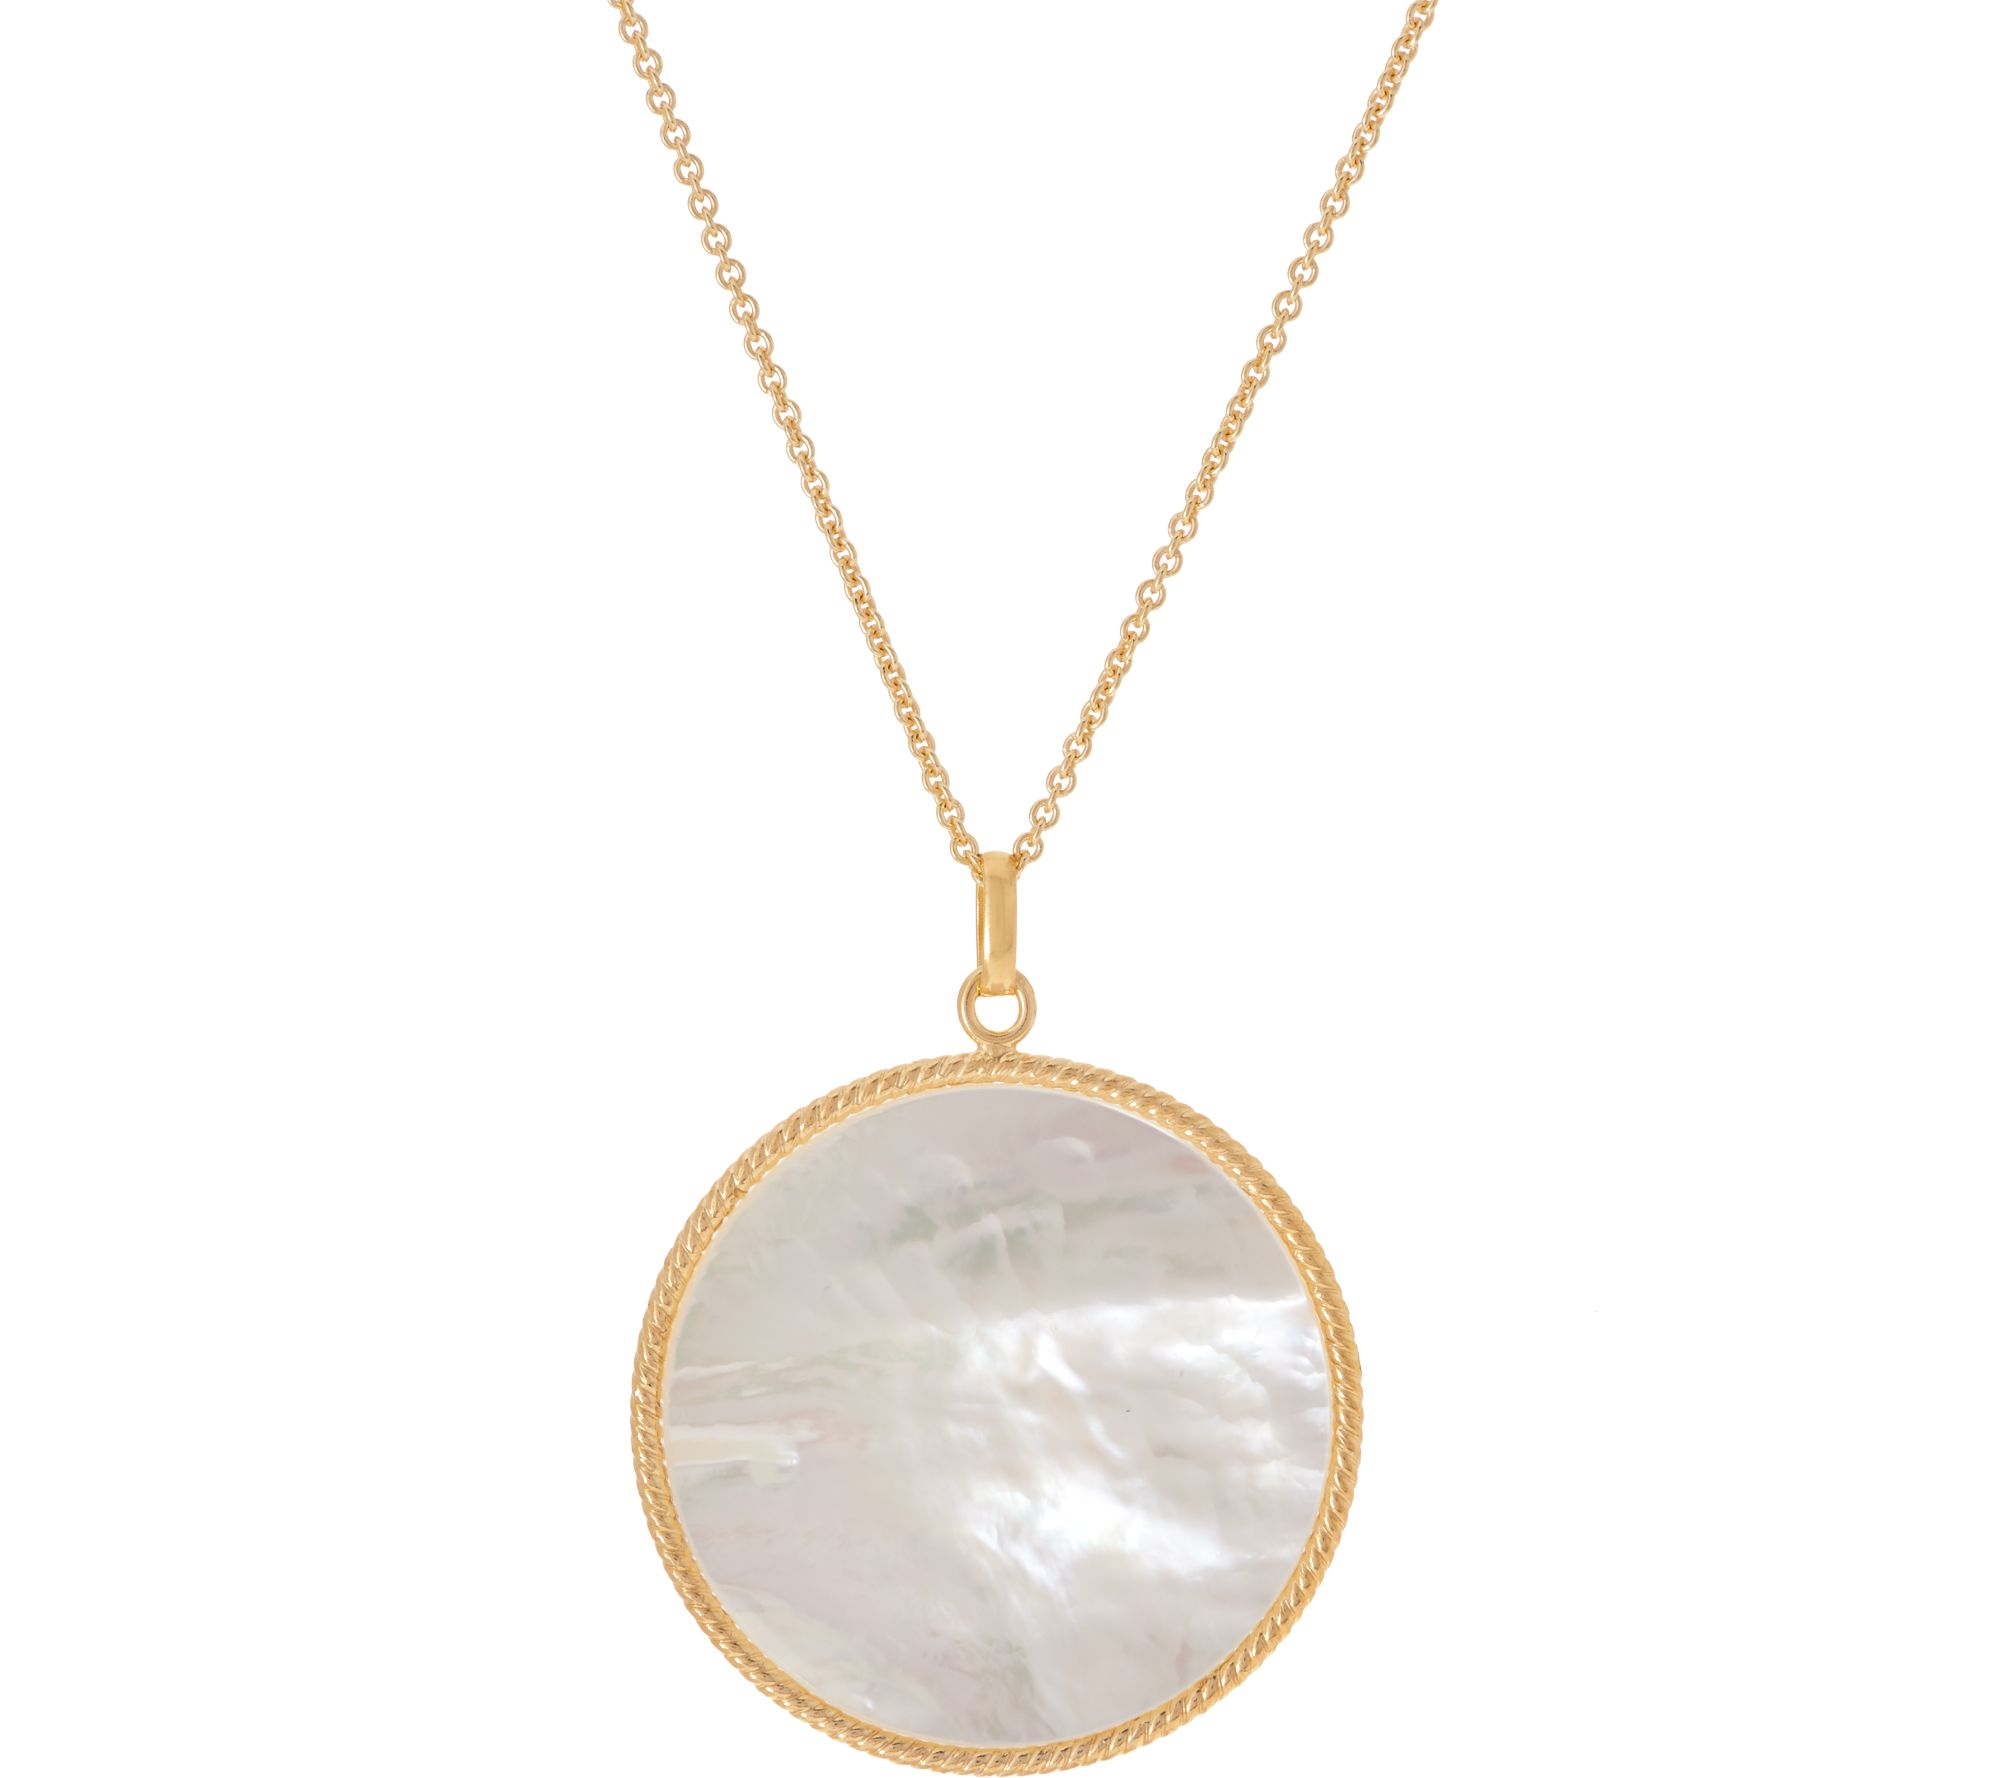 Honora white mother of pearl pendant w 30 chain sterling page 1 honora white mother of pearl pendant w 30 chain sterling page 1 qvc mozeypictures Choice Image